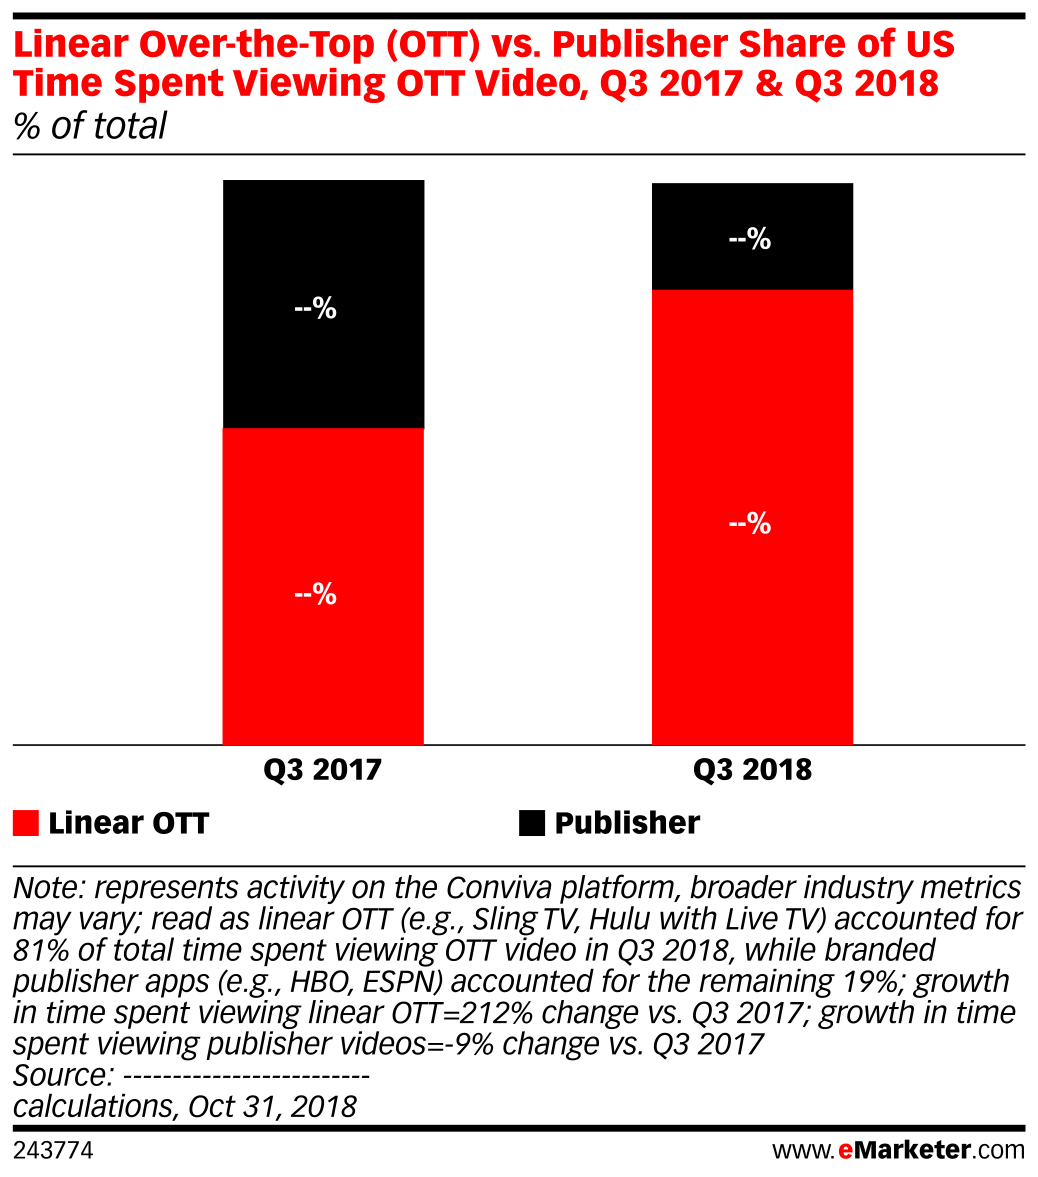 Linear Over-the-Top (OTT) vs. Publisher Share of US Time Spent Viewing OTT Video, Q3 2017 & Q3 2018 (% of total)